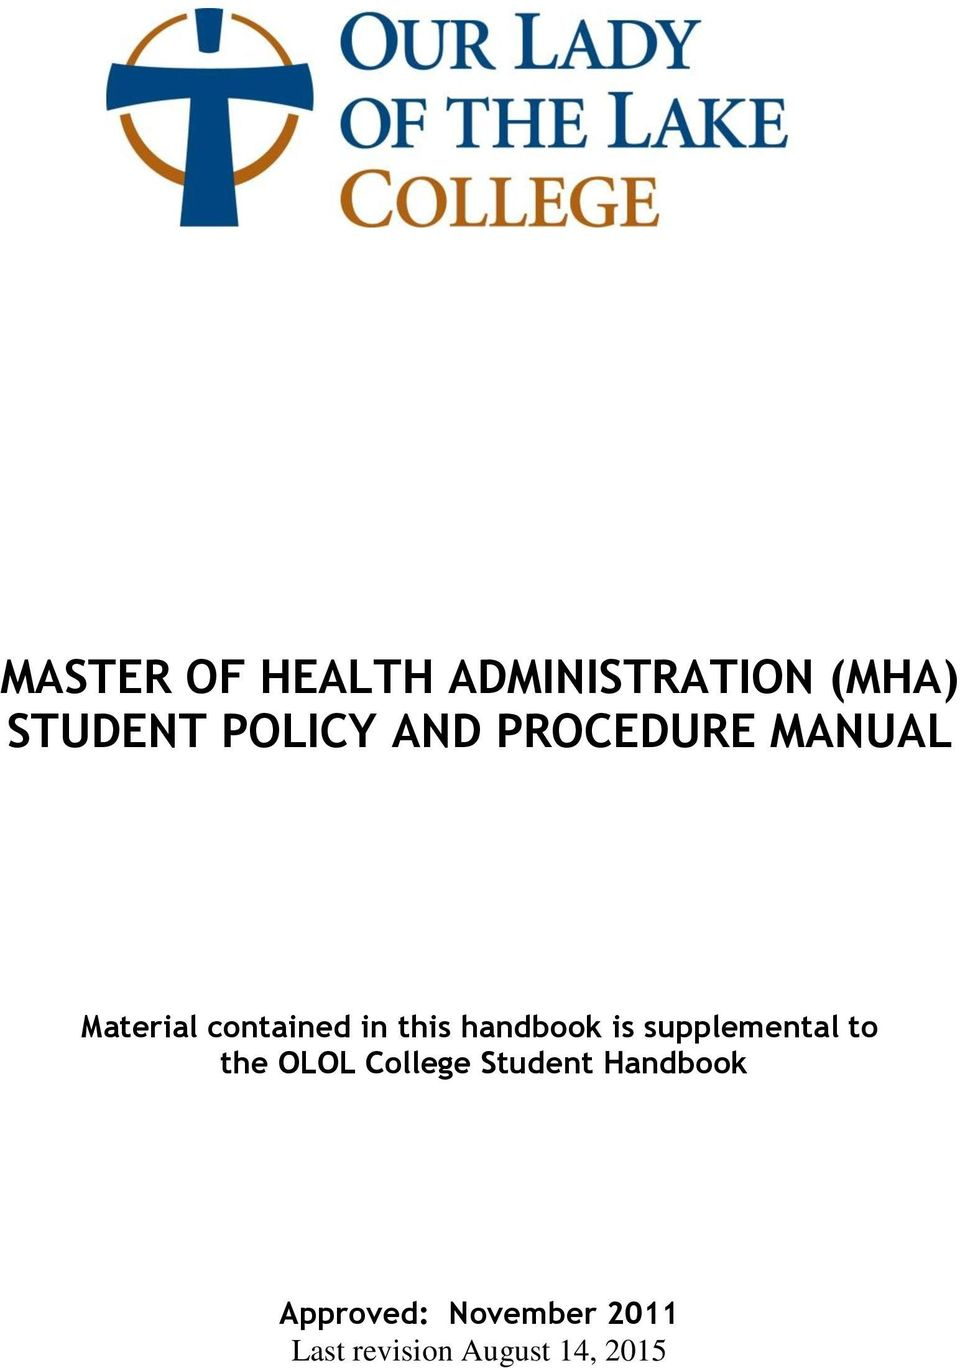 handbook is supplemental to the OLOL College Student